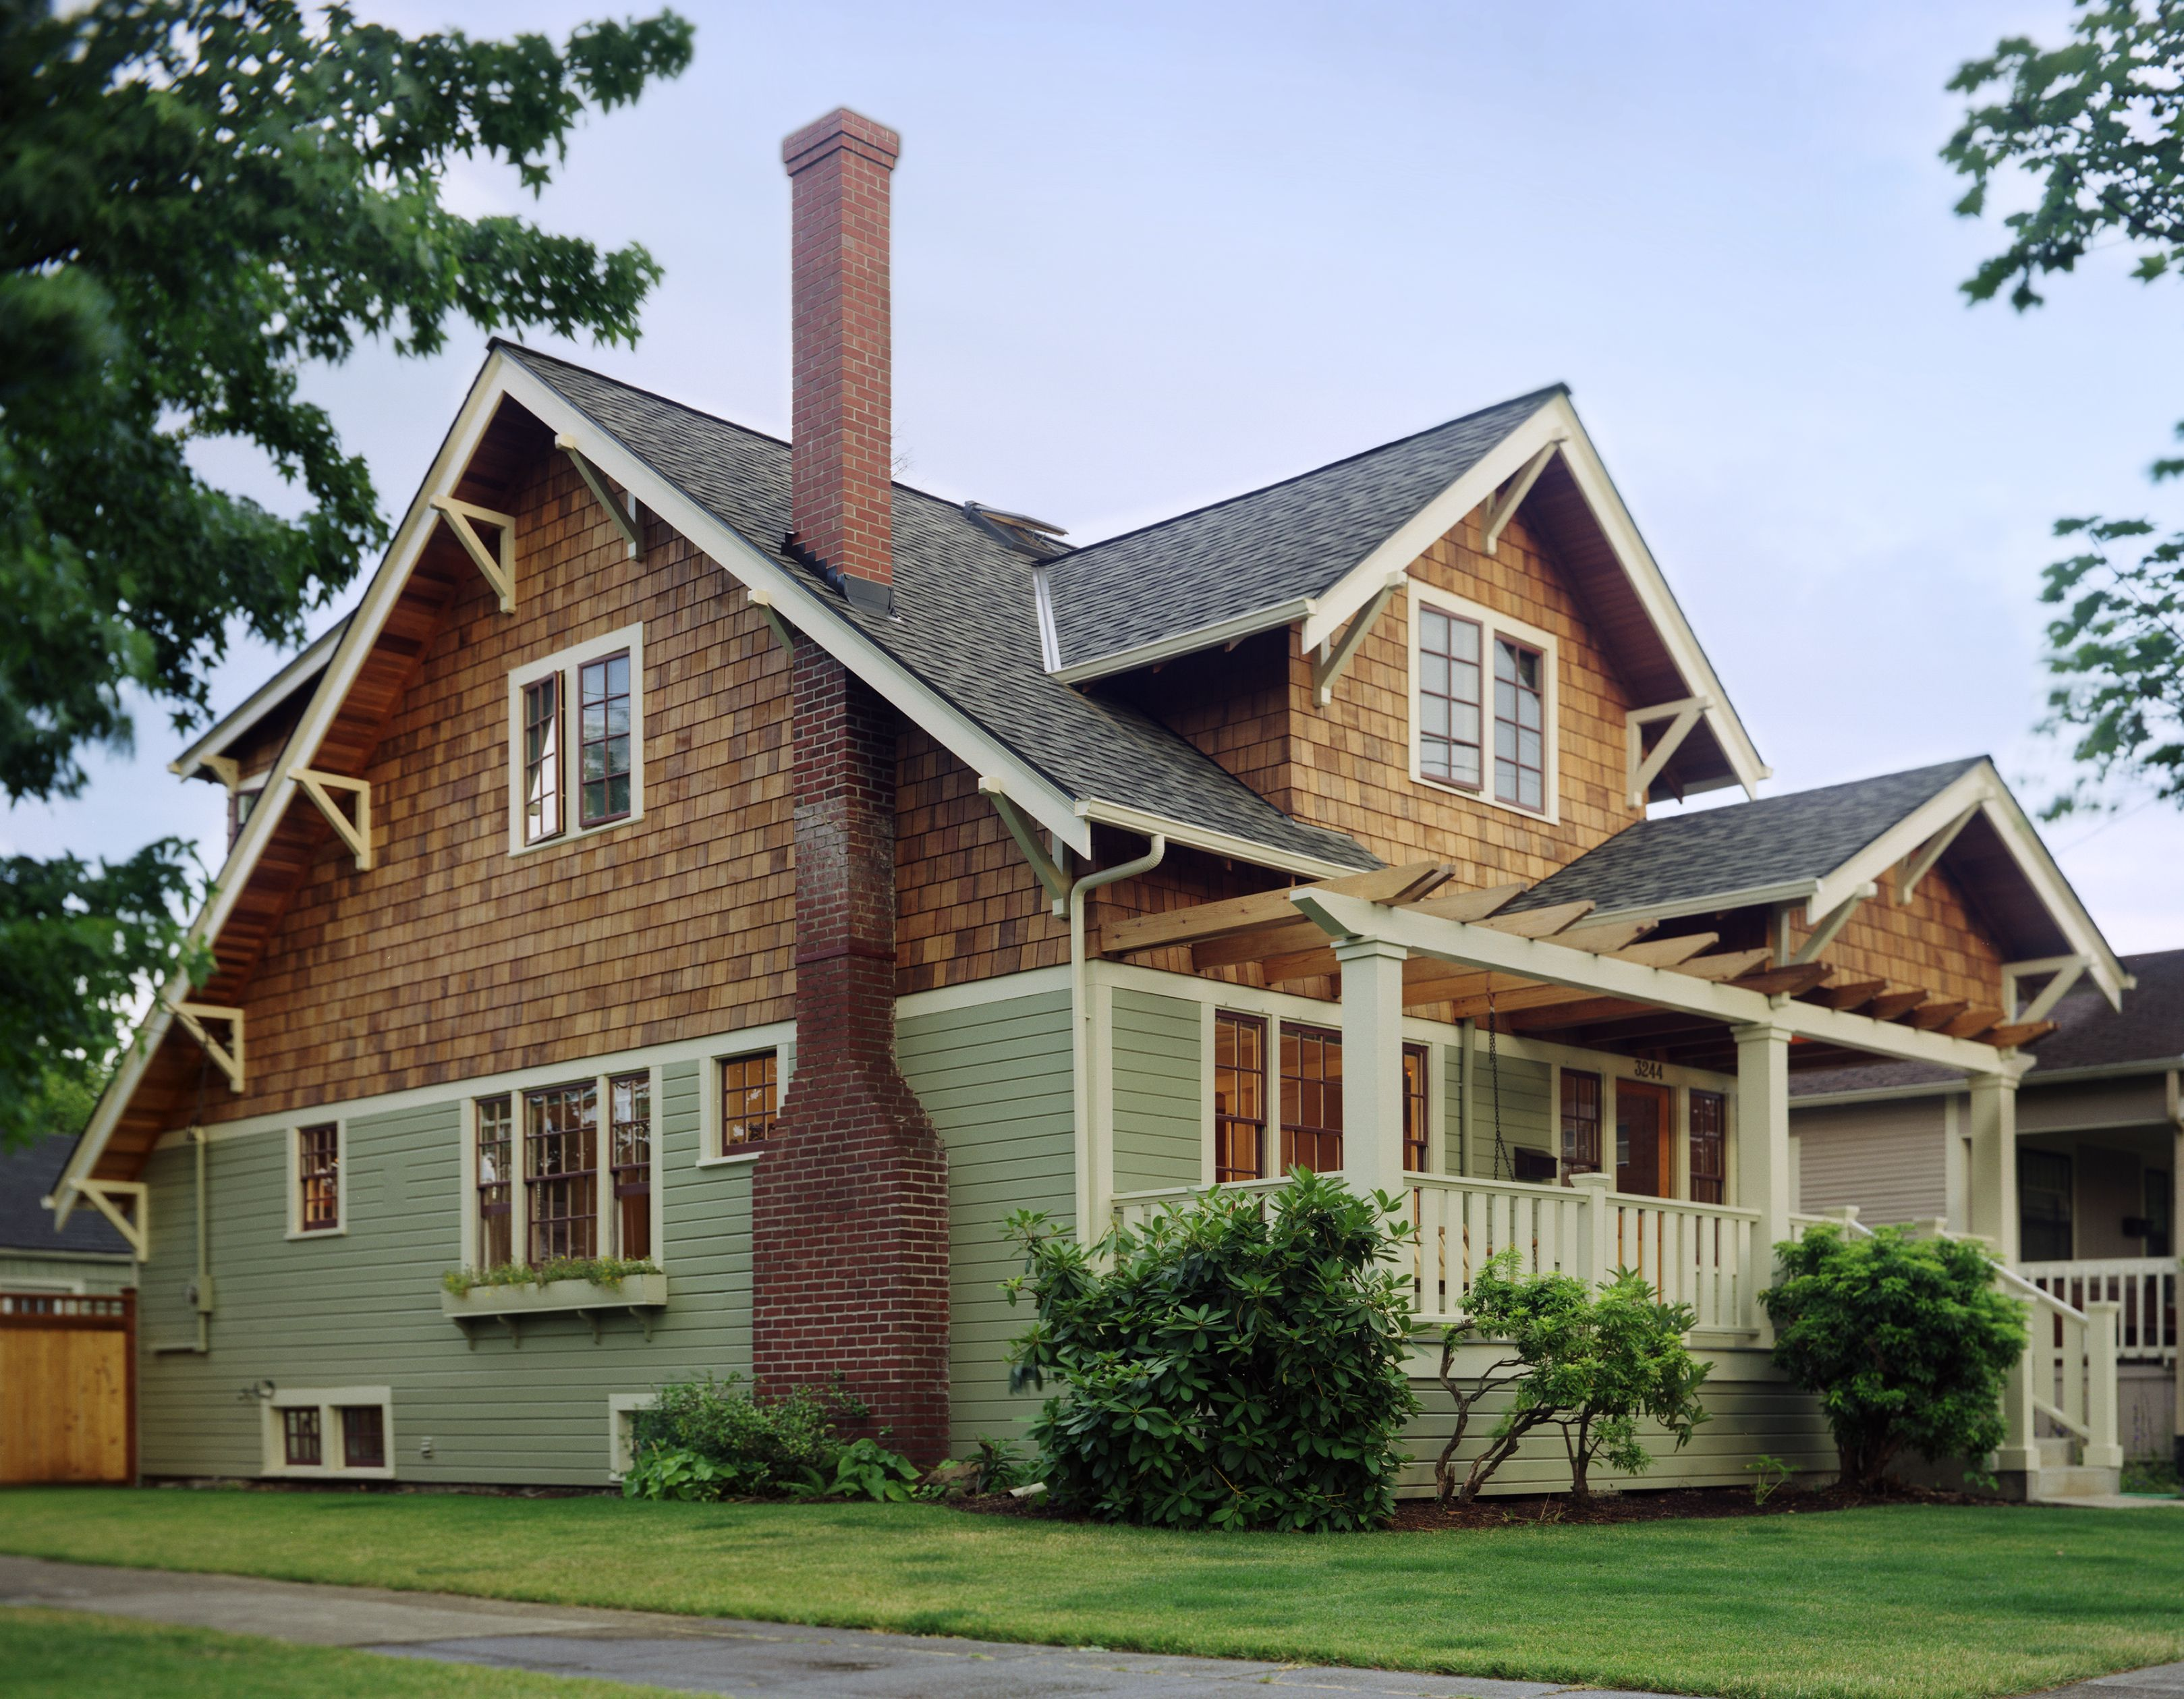 Pacific northwest architecture craftsman style house not for Prefab arts and crafts homes